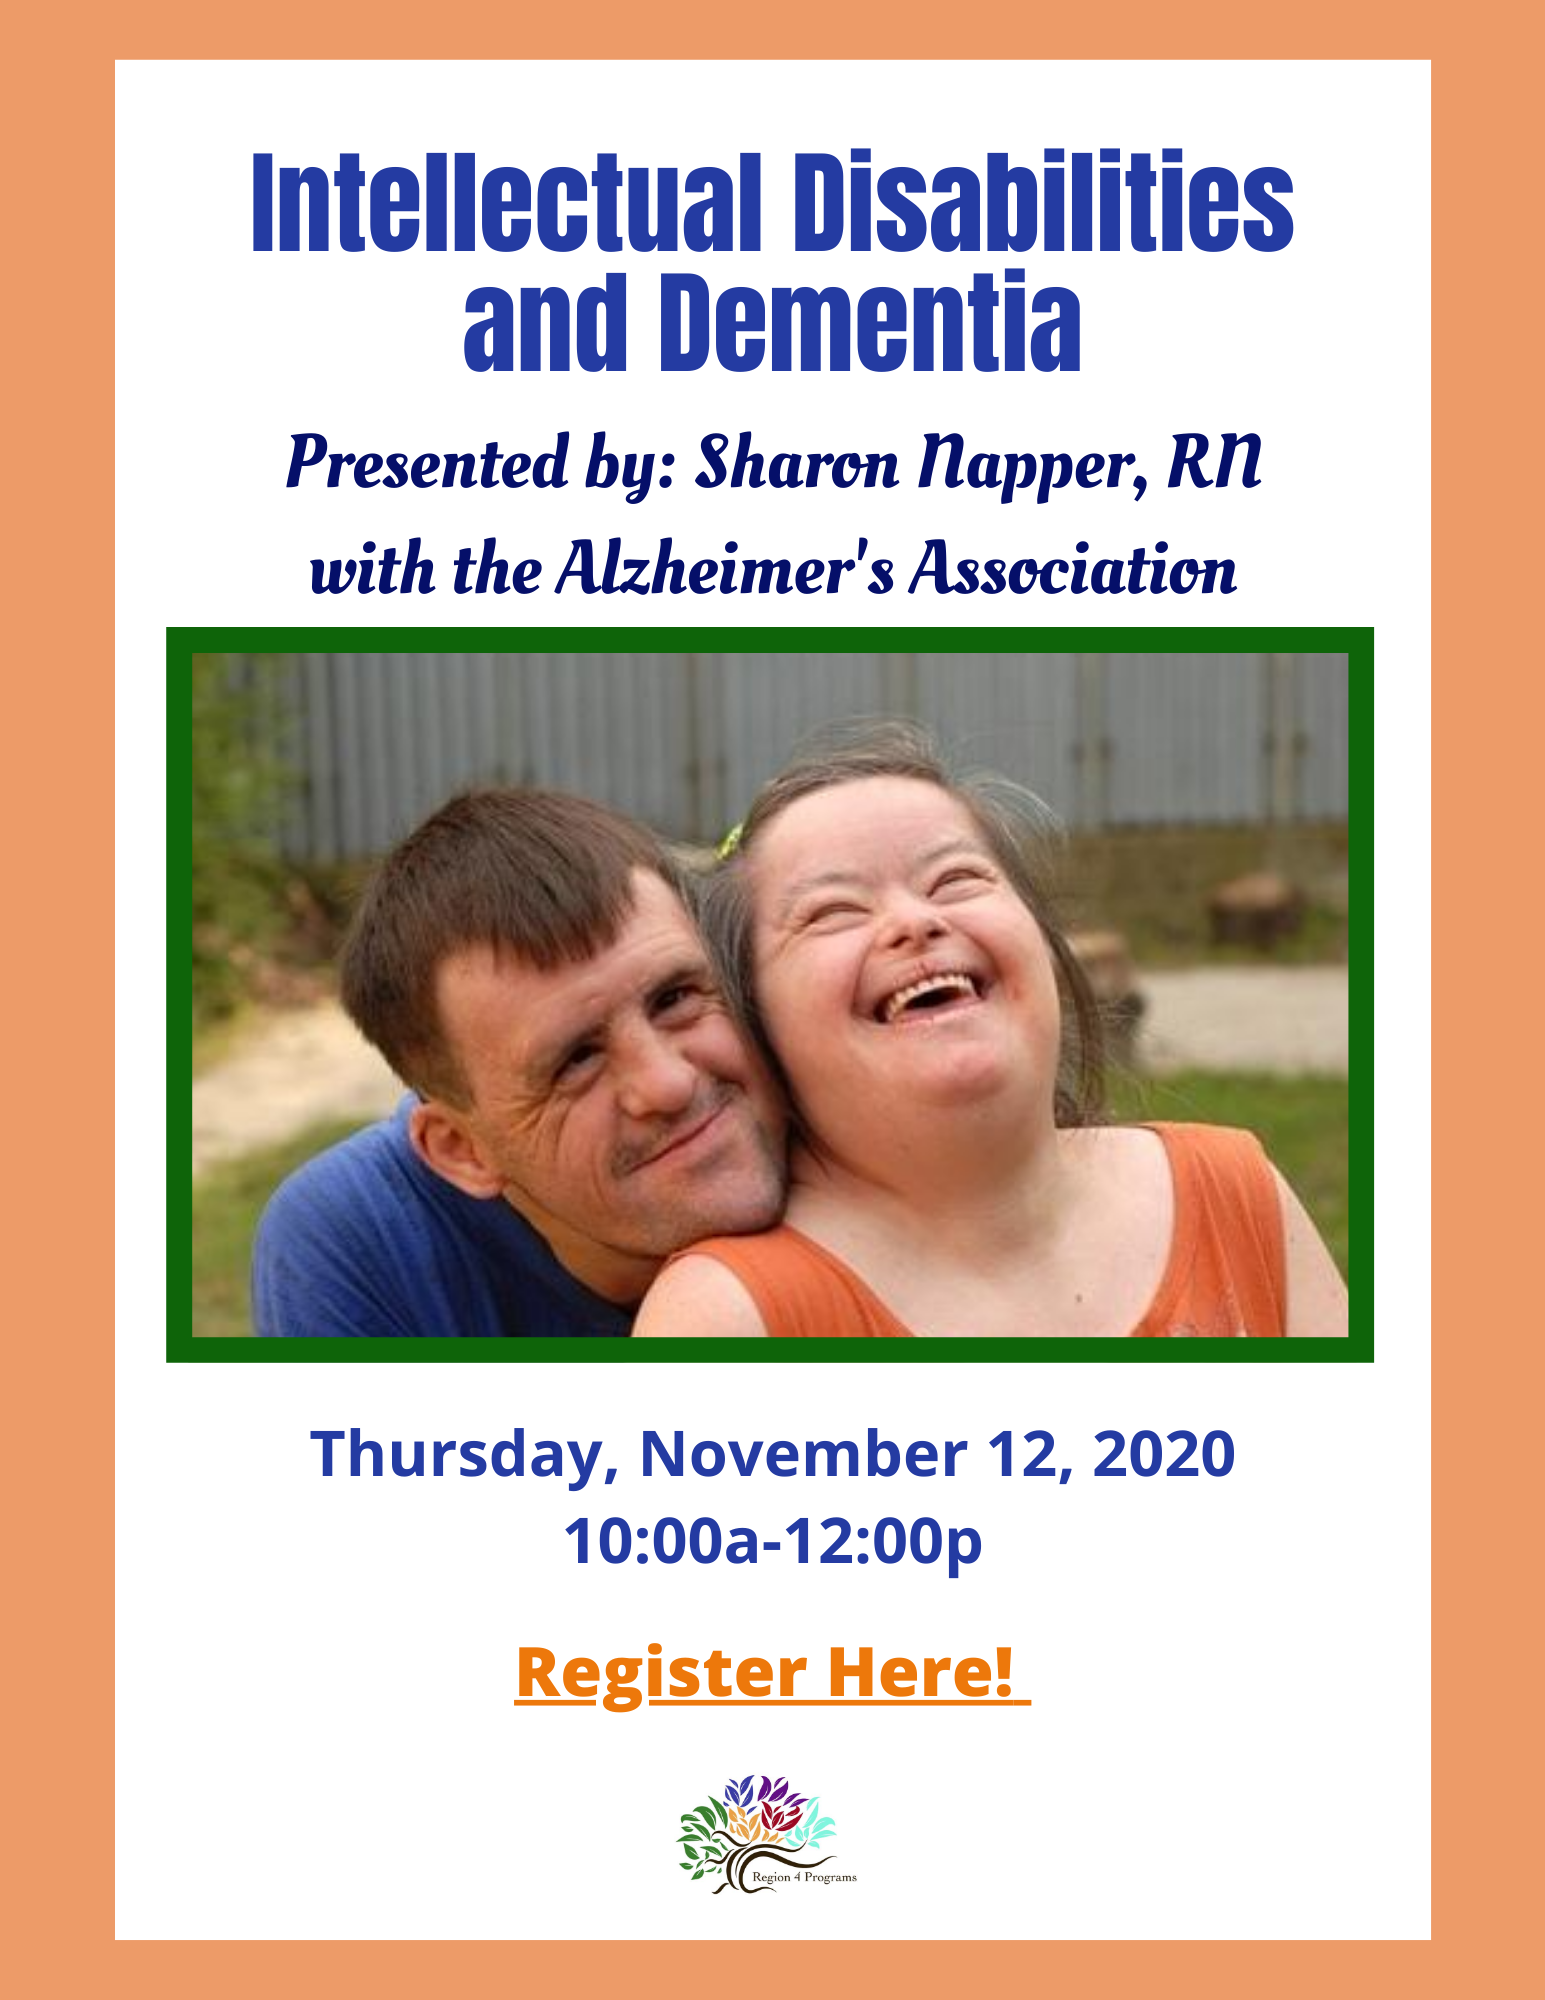 Intellectual-Disabilities-and-Dementia-presented-by-Sharon-Napper-RN-with-the-Alzheimers-Association